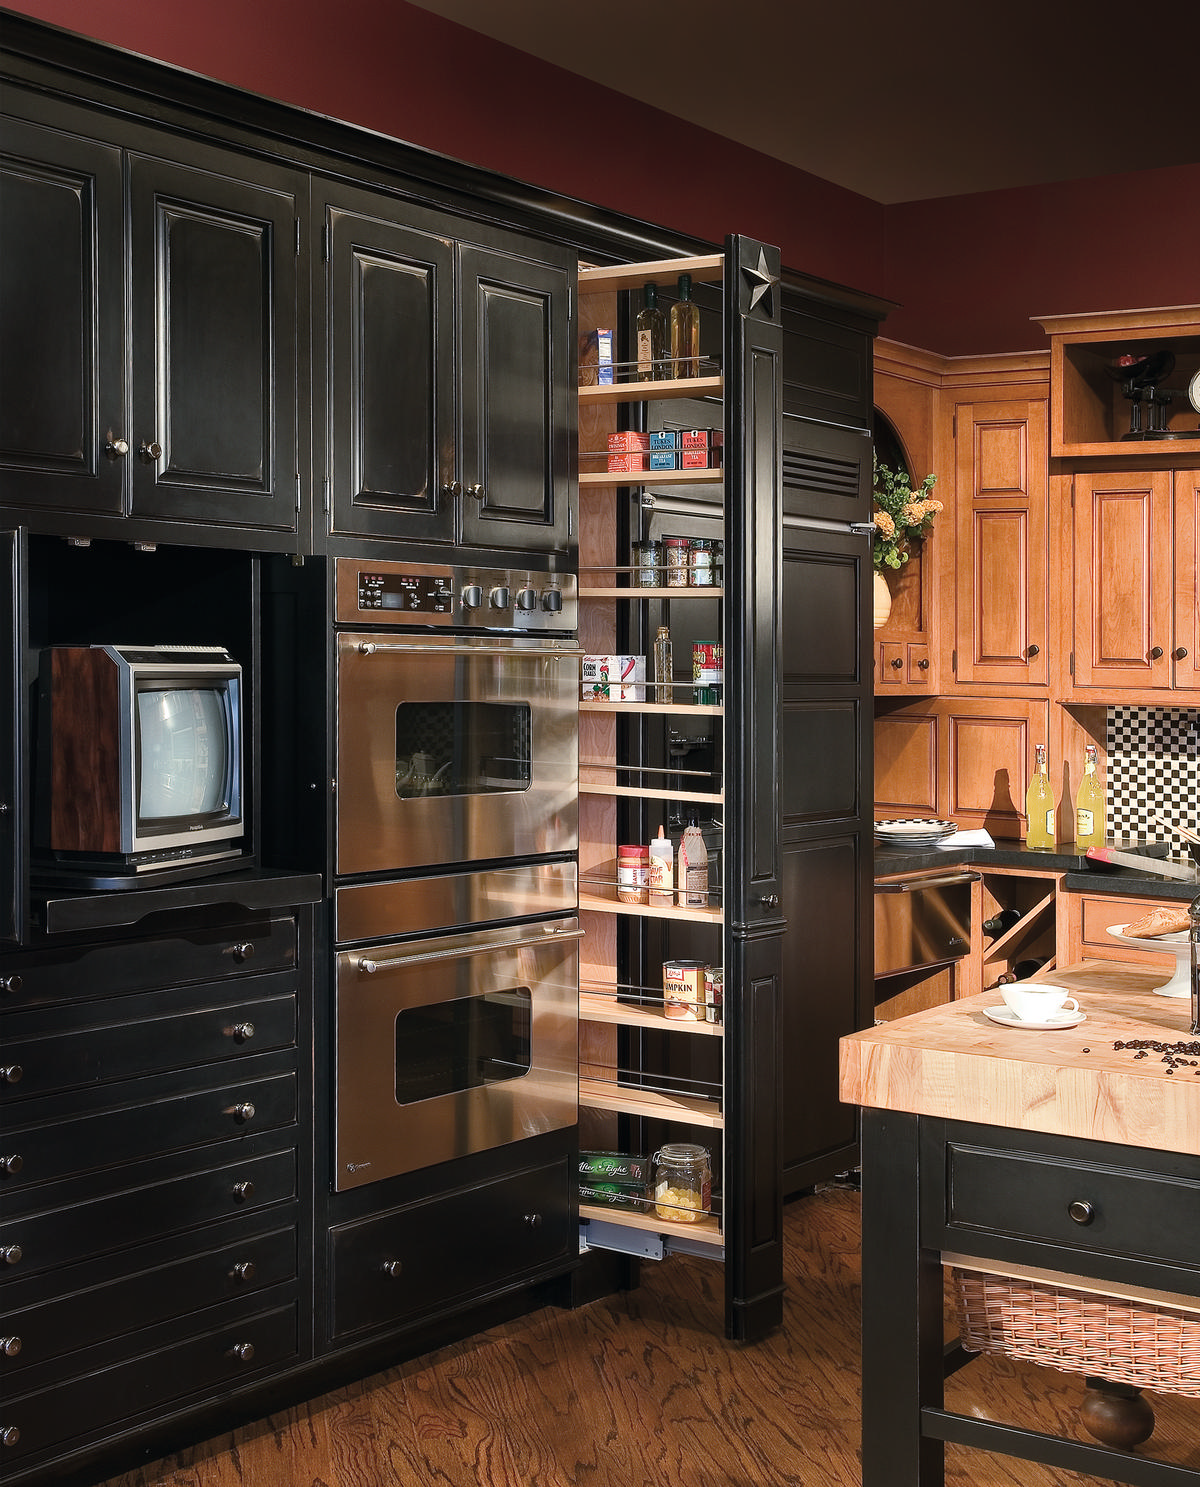 Warehouse Kitchen Cabinets: Hafele 421.48.381 Pull-Out Cabinet Slide, Gray